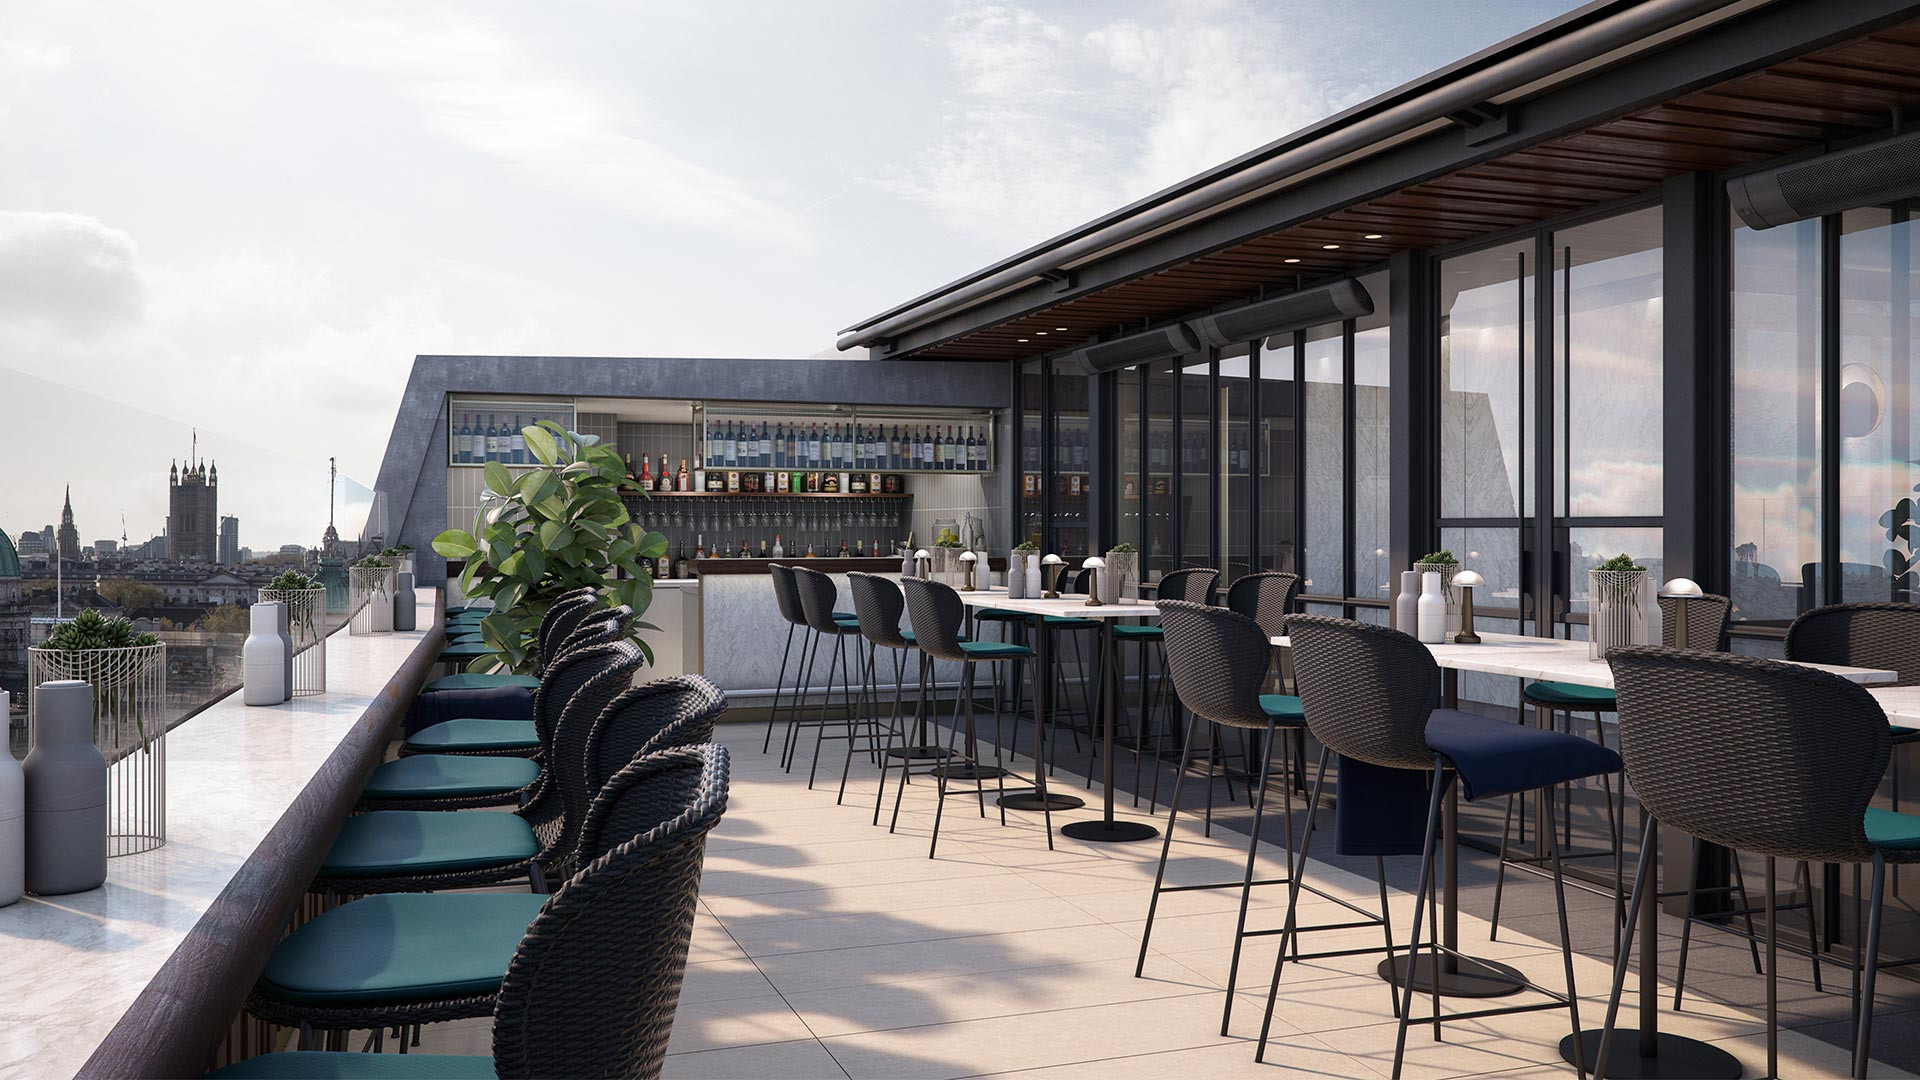 The roof terrace at the Trafalgar St James hotel in central London